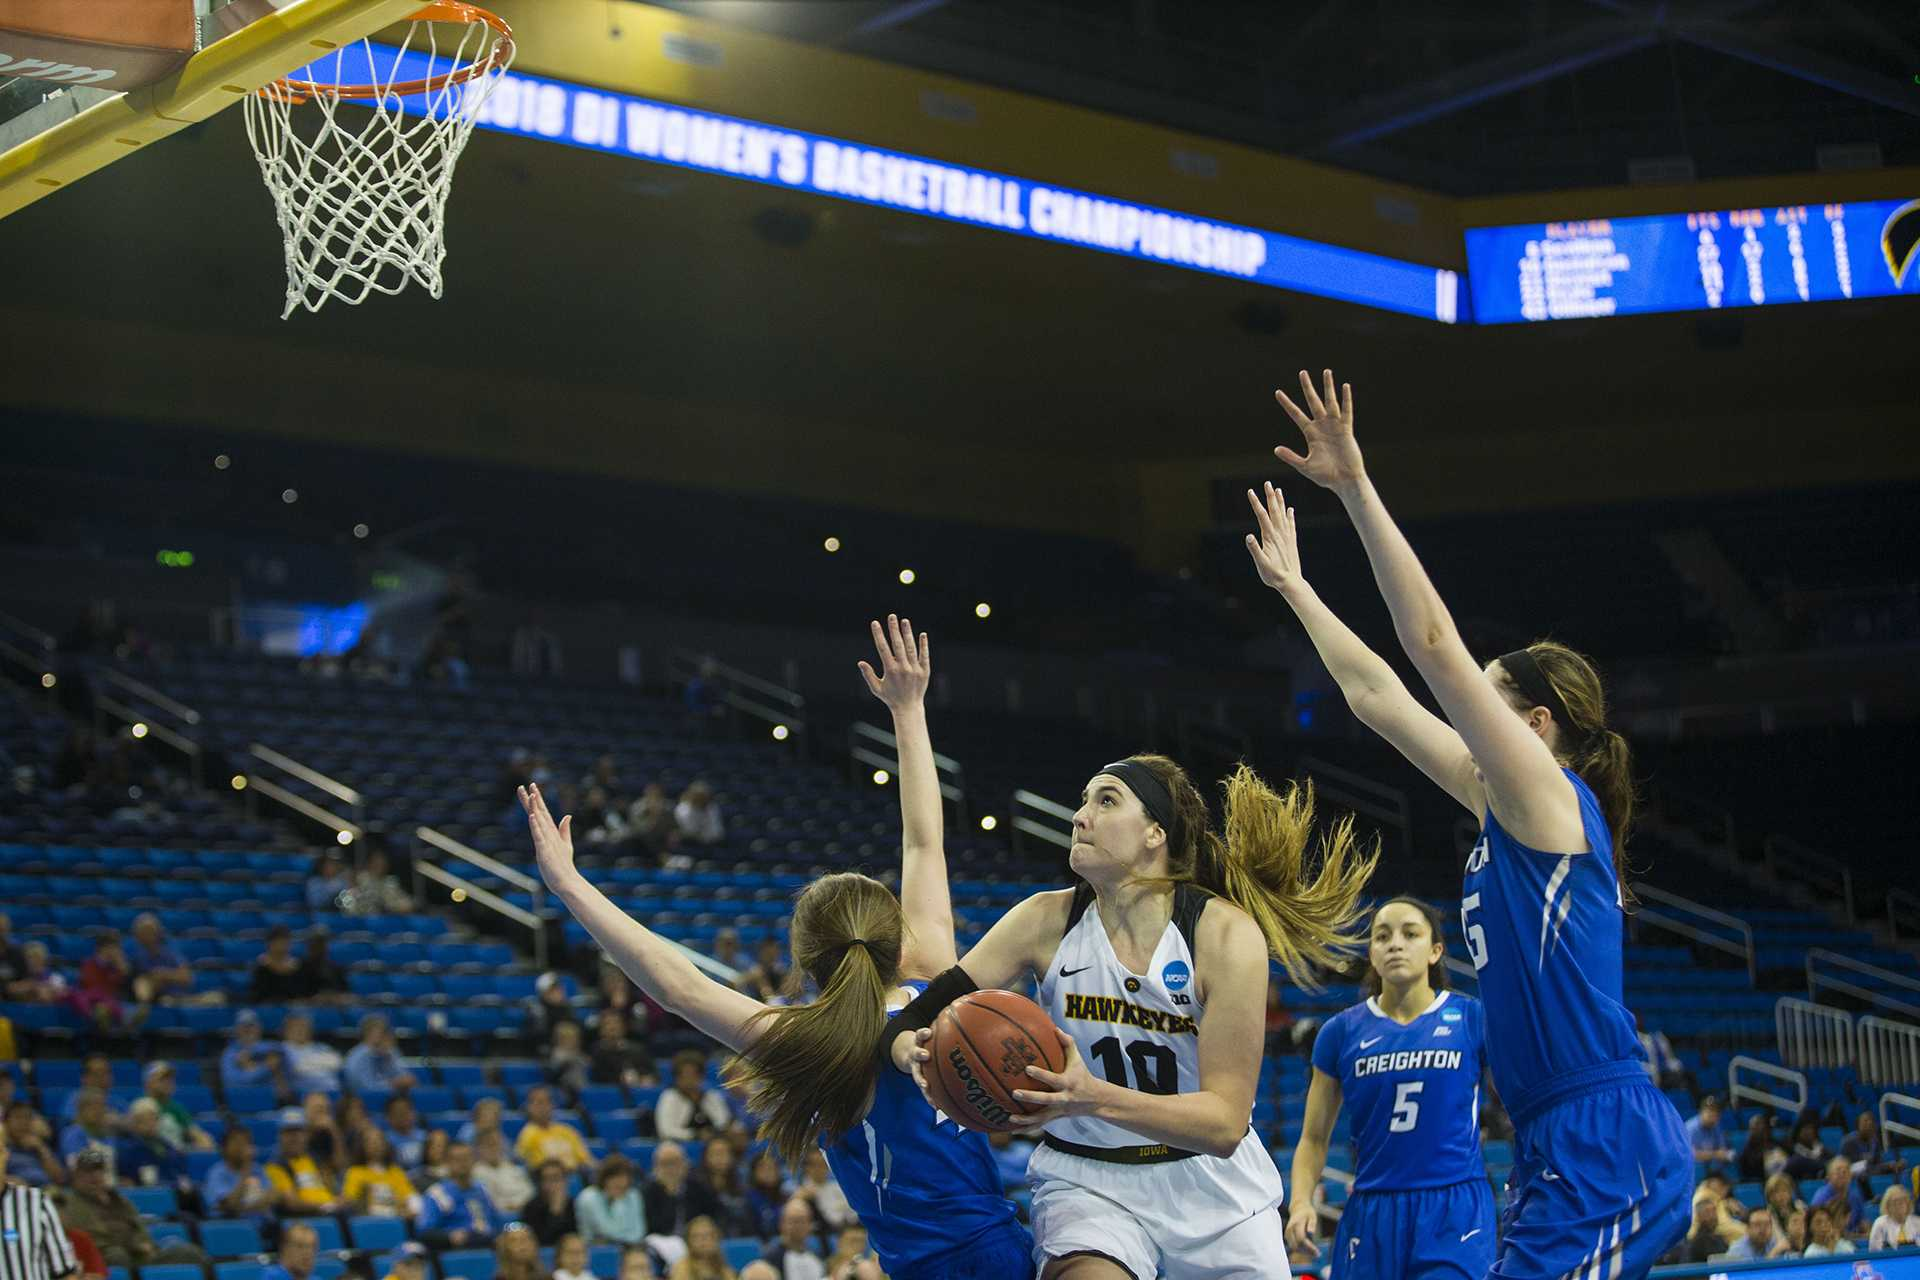 Iowa forward Megan Gustafson attempts a shot during the Iowa/Creighton NCAA tournament first round basketball game at Pauley Pavilion on UCLA's campus in Los Angeles on Saturday, March 17, 2018. The Bluejays defeated the Hawkeyes, 76-70. (Lily Smith/The Daily Iowan)